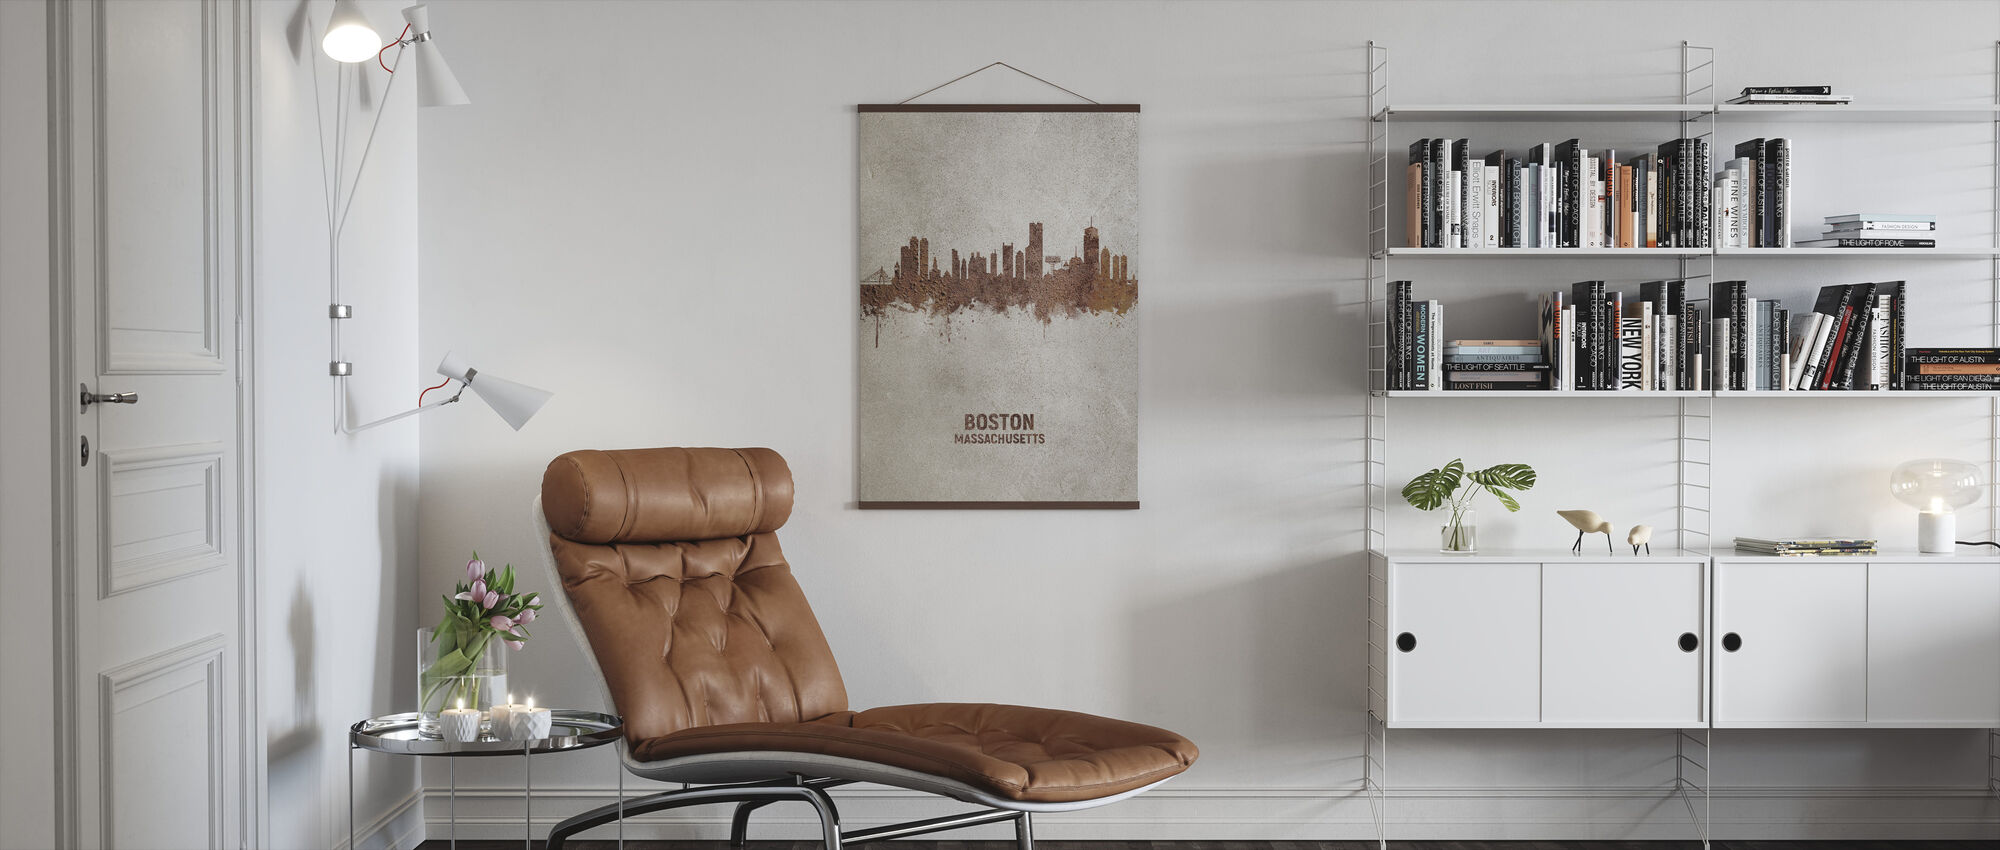 Boston Massachusetts Rust Skyline - Poster - Living Room